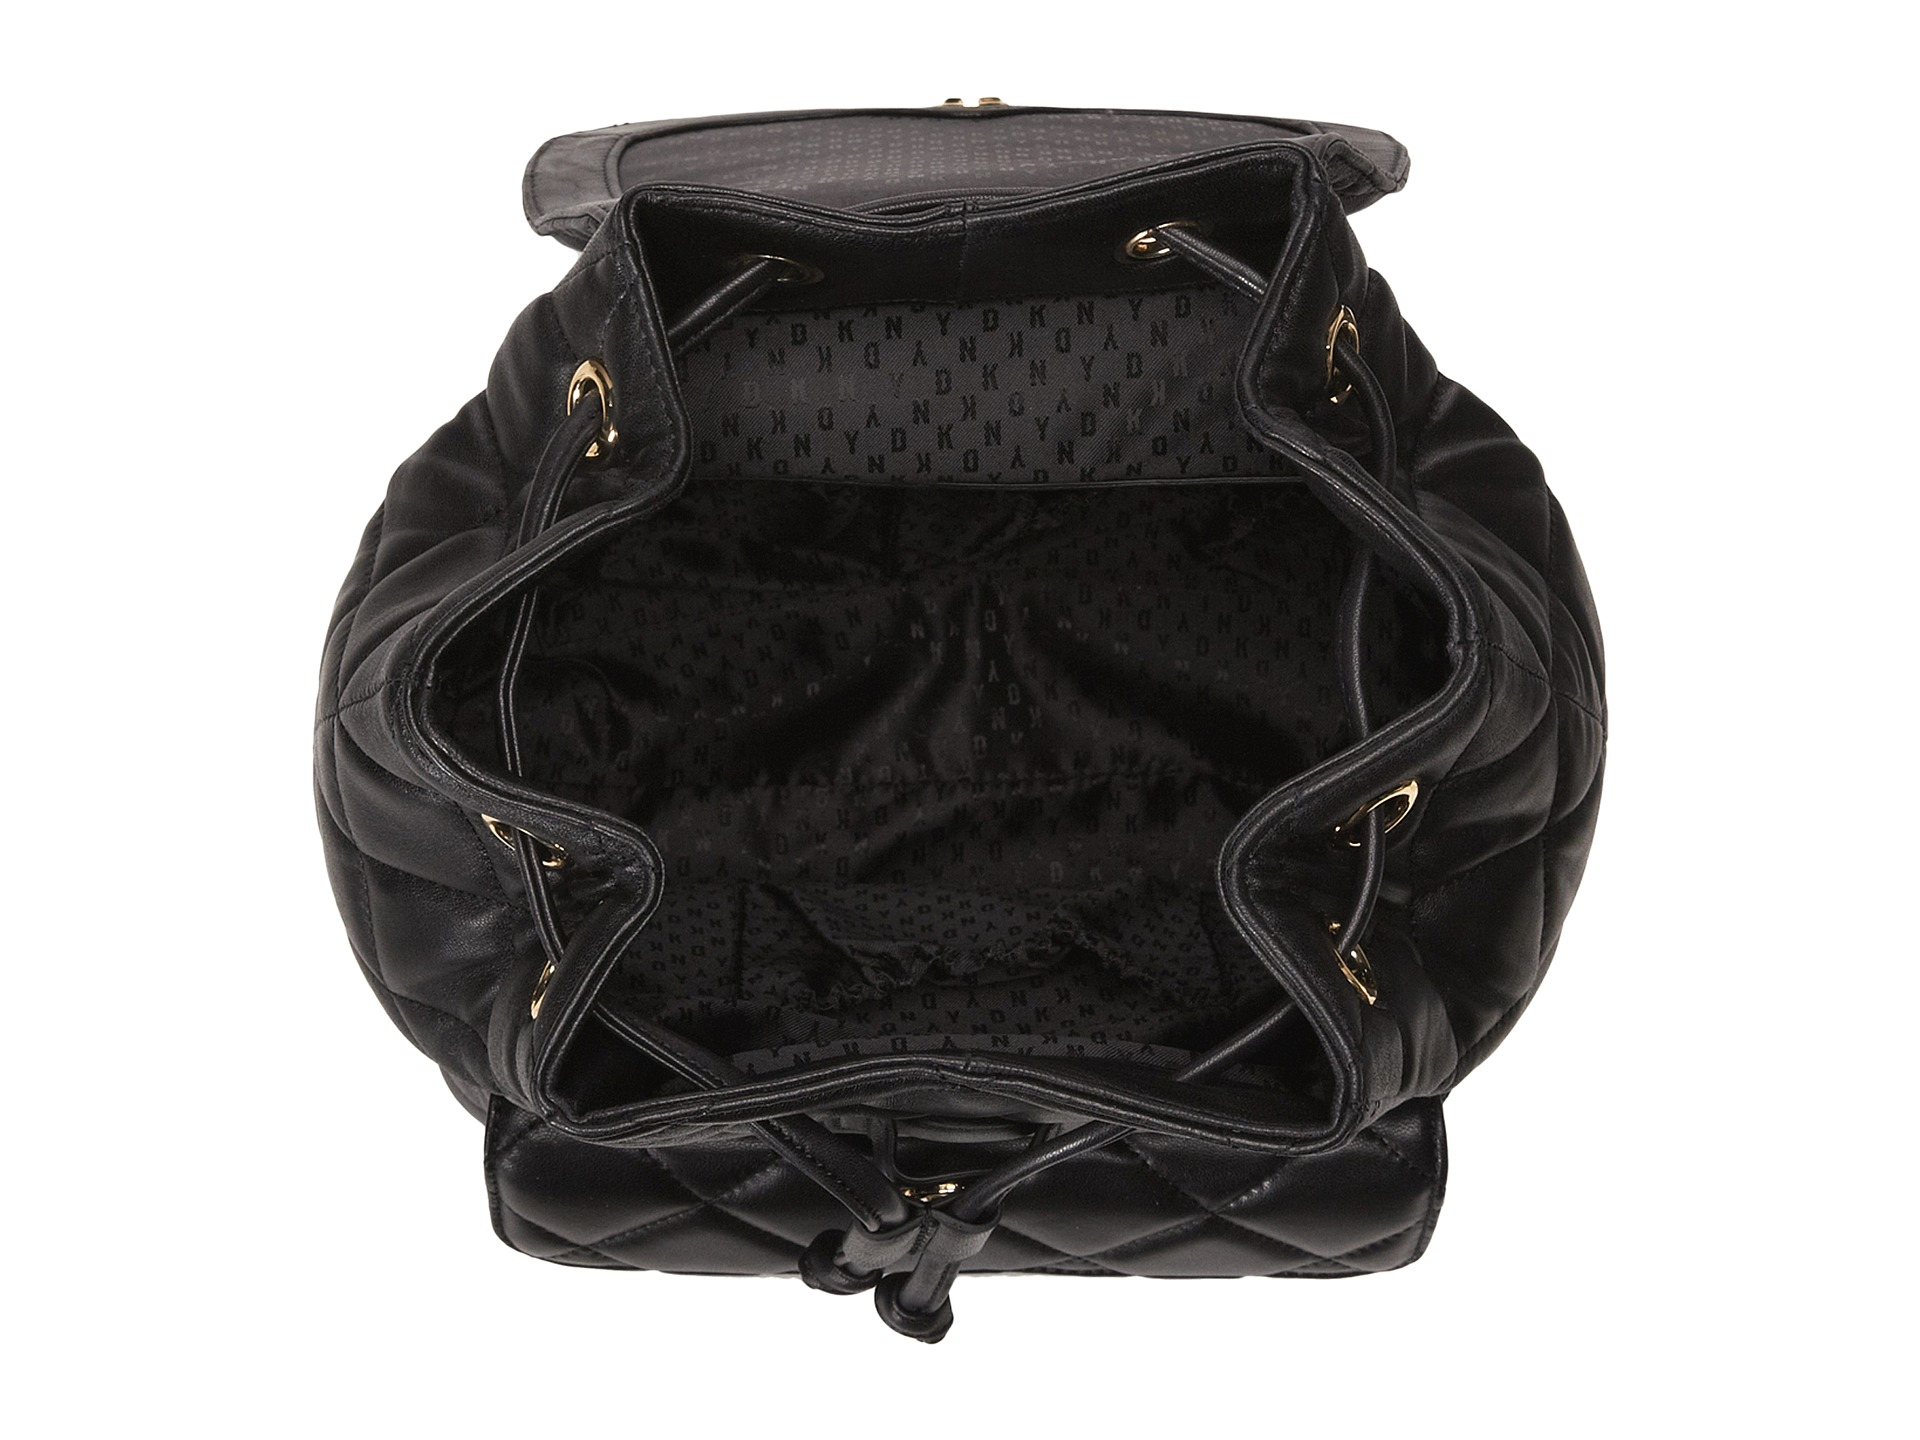 Dkny Gansevoort - Quilted Backpack in Black | Lyst : dkny quilted rucksack - Adamdwight.com